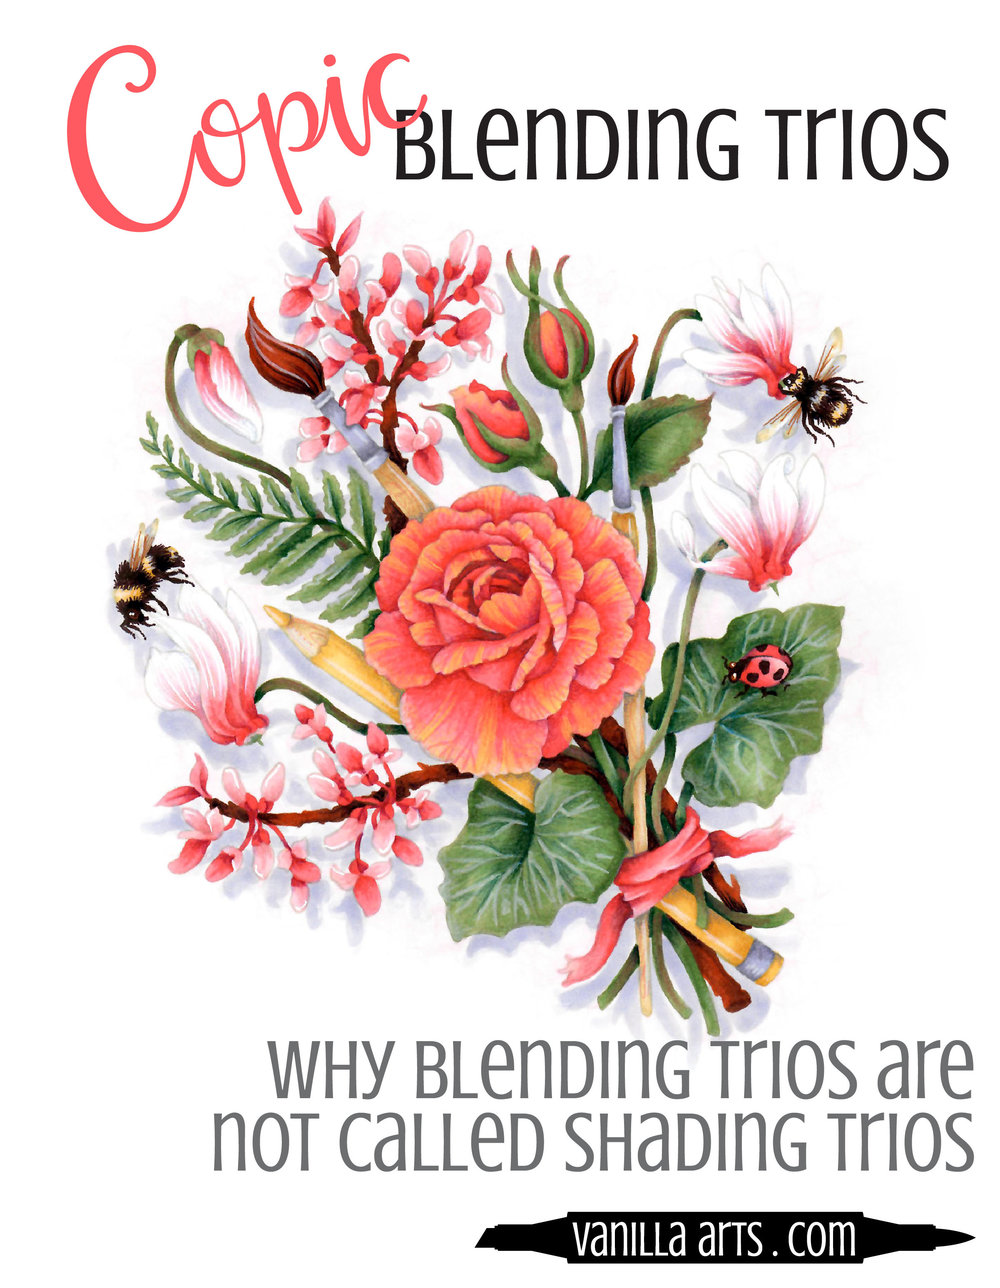 Copic Blending Trios do not really add realism to your coloring. Learn the method artists have been using for centuries- Color Sculpting. It's easier than you think and no math required!  VanillaArts.com